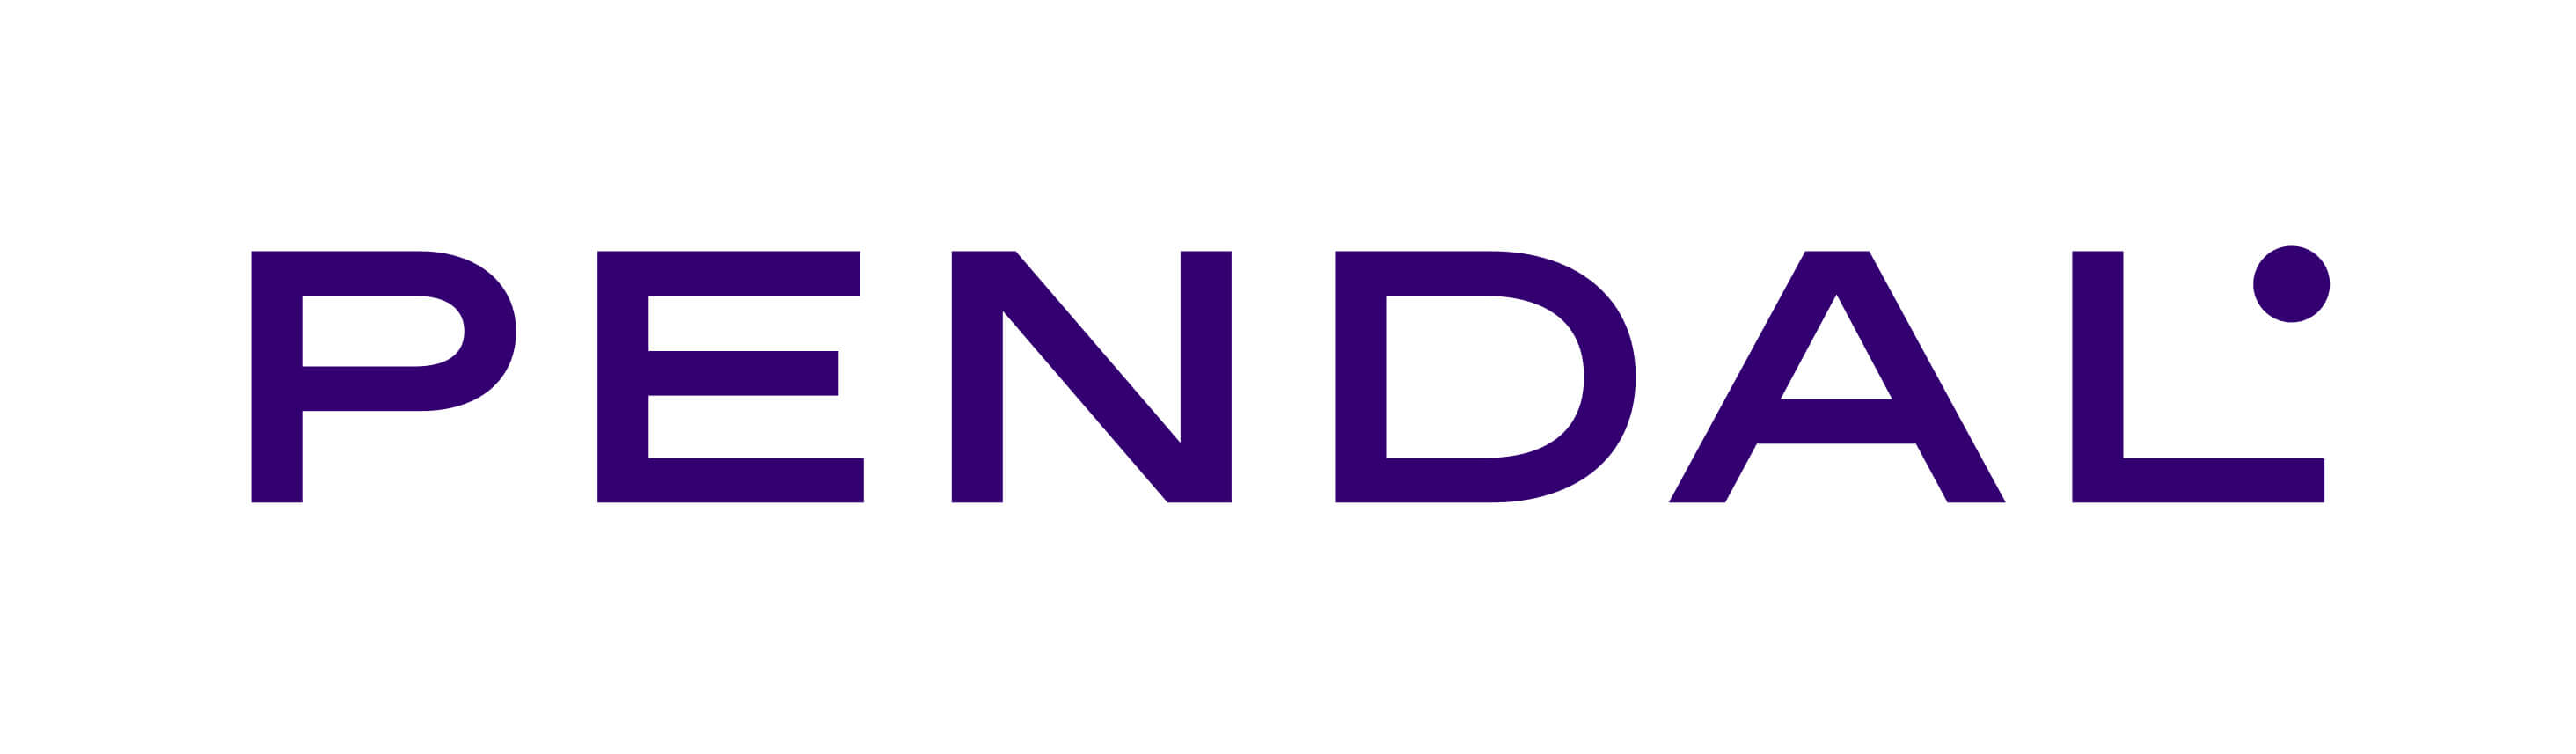 Compressed pendal logo rgb purple